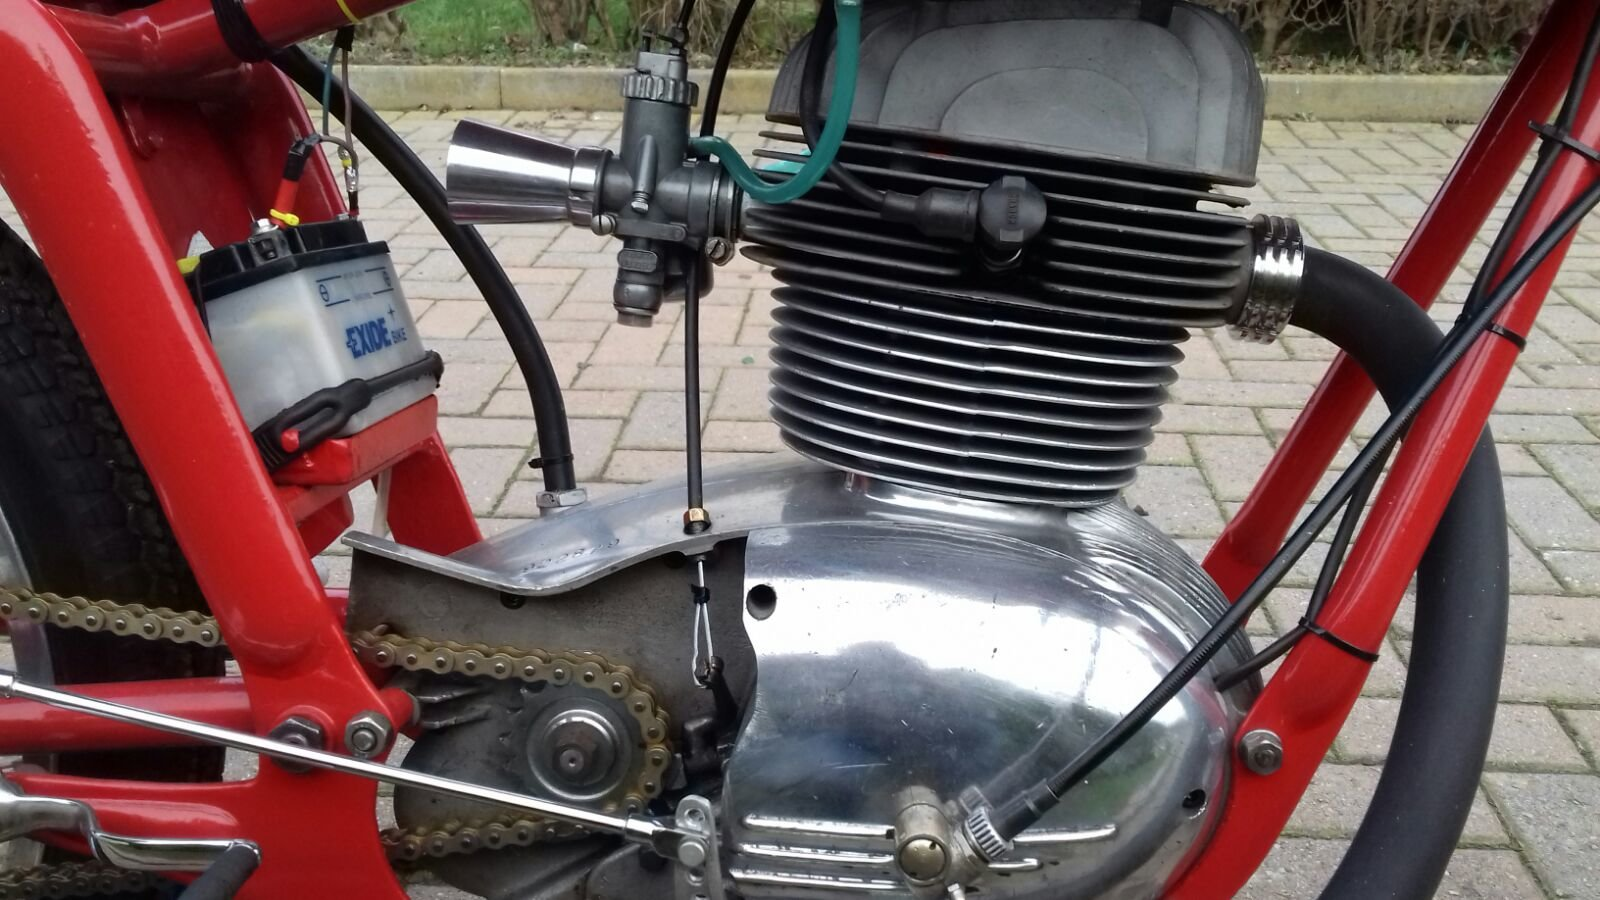 1954 Mv Agusta 175cc Cafe' Race  For Sale (picture 5 of 6)